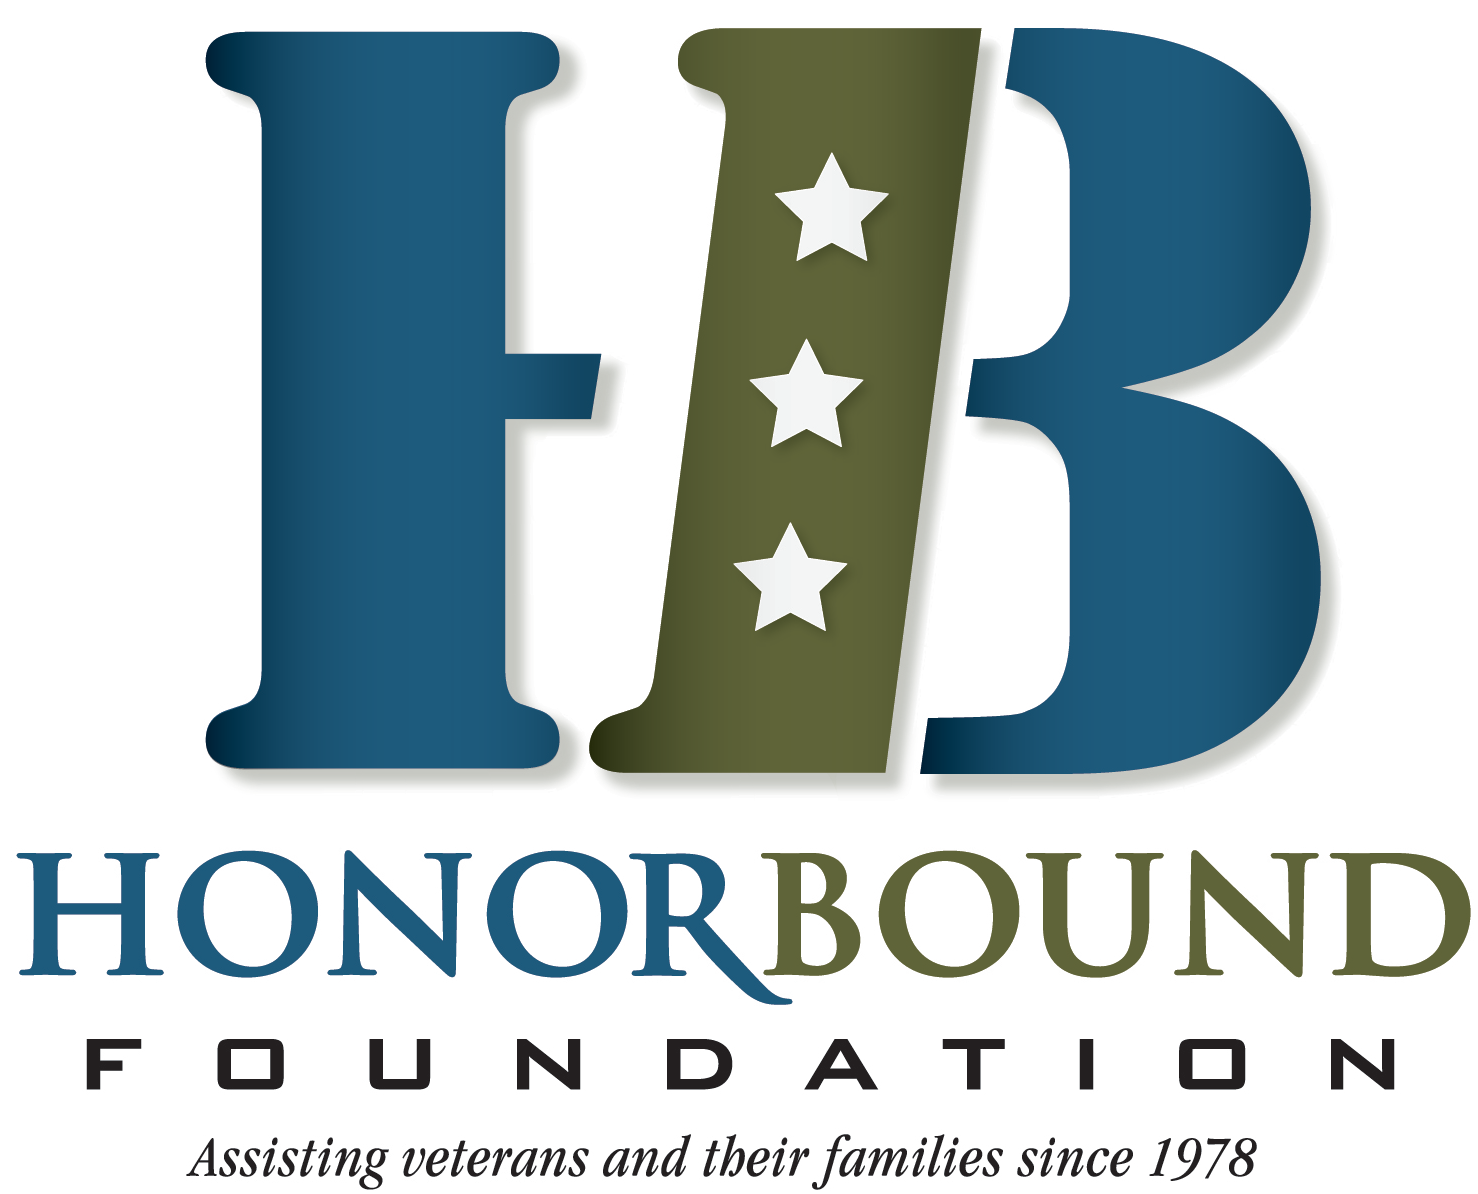 Arkansas Car Donations - HonorBound Foundation - DonatecarUSA.com